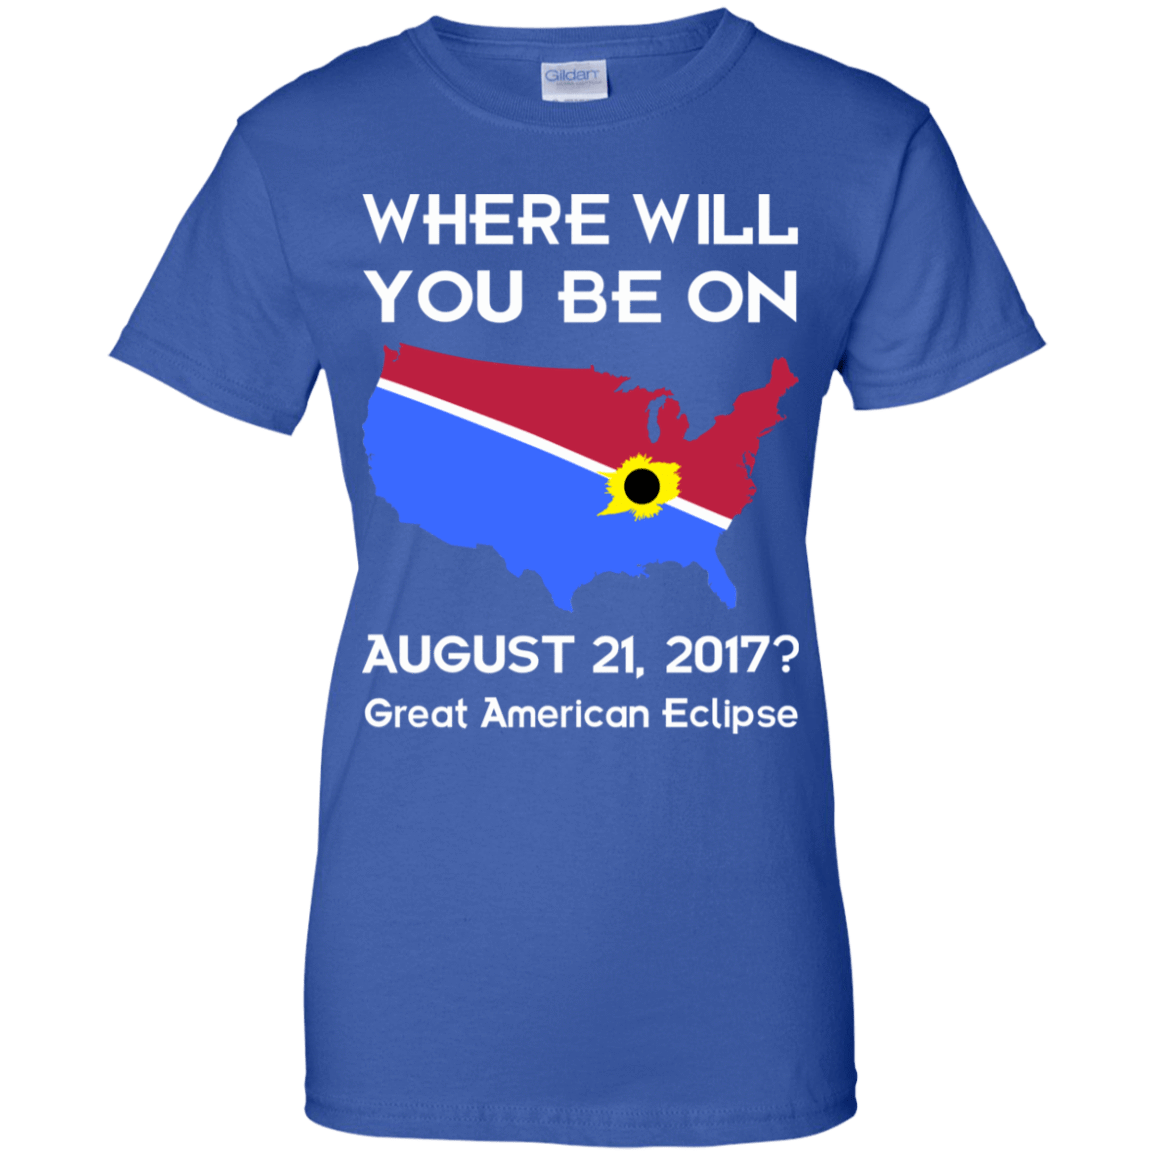 Solar Eclipse 2017: Where Will You Be On August 21 2017 939-9264-72772491-44807 - Tee Ript